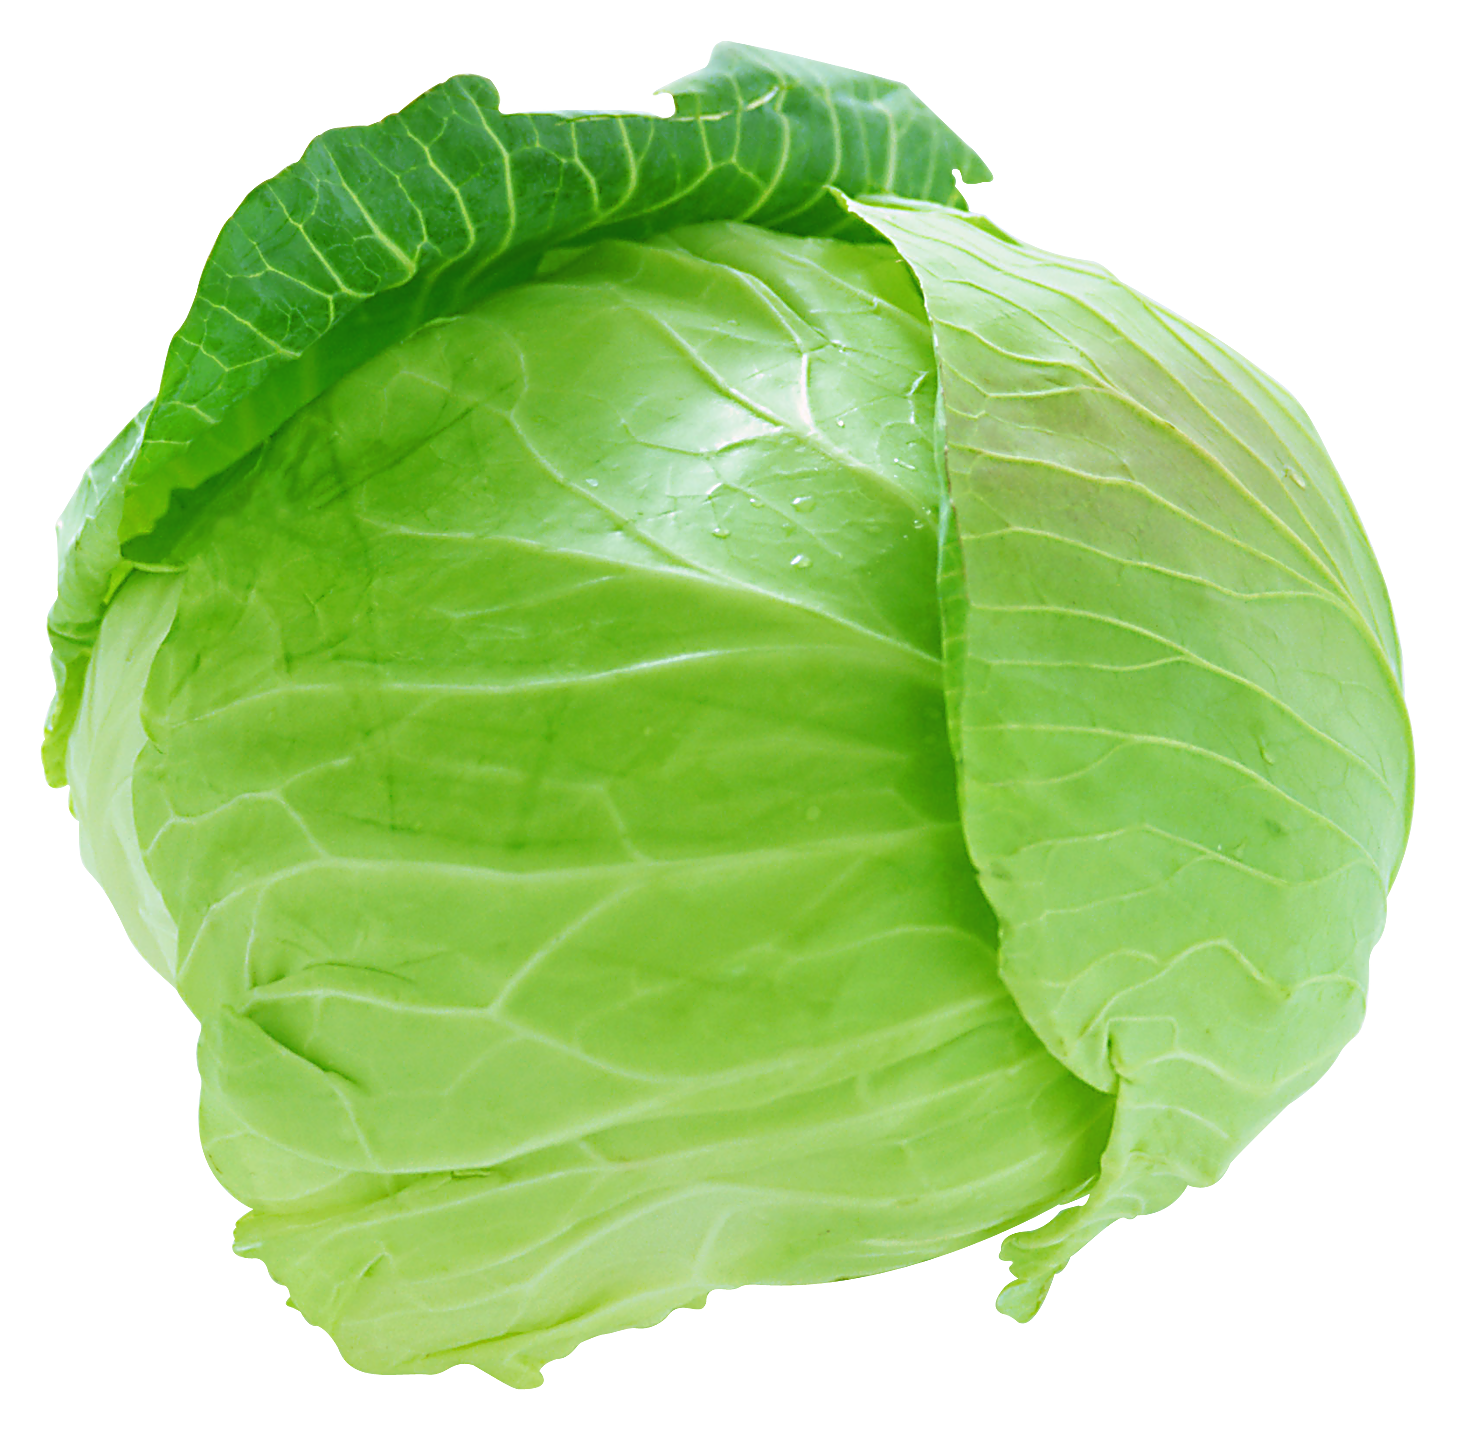 Cabbage clipart DownloadClipart org Cliparts Free Related